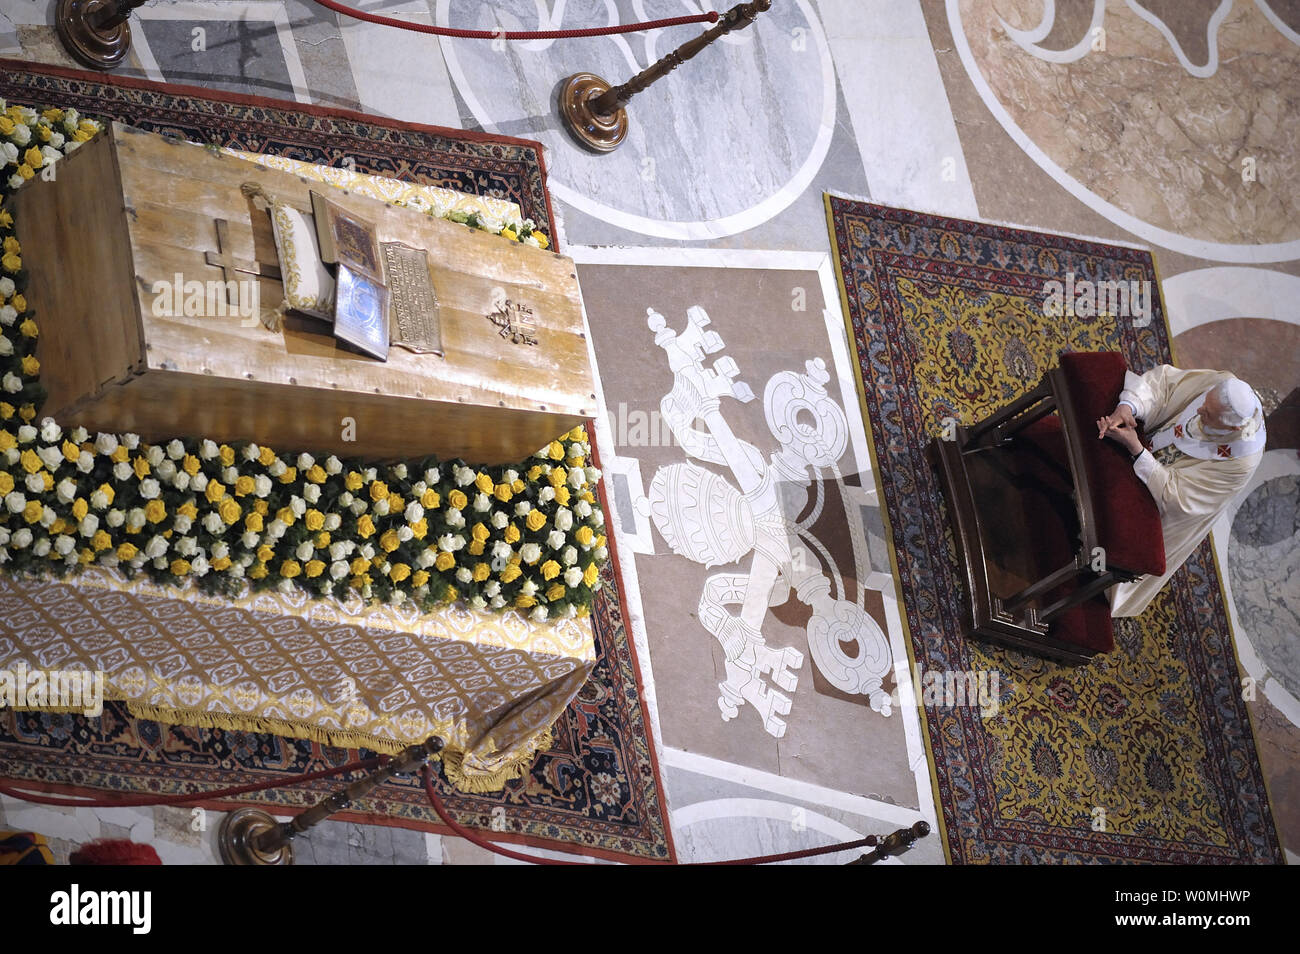 Pope Benedict XVI kneels before the coffin of his predecessor Pope John Paul II in St. Peter's Basilica in the Vatican following his beatification on May 1, 2011.   UPI/Stefano Spaziani Stock Photo